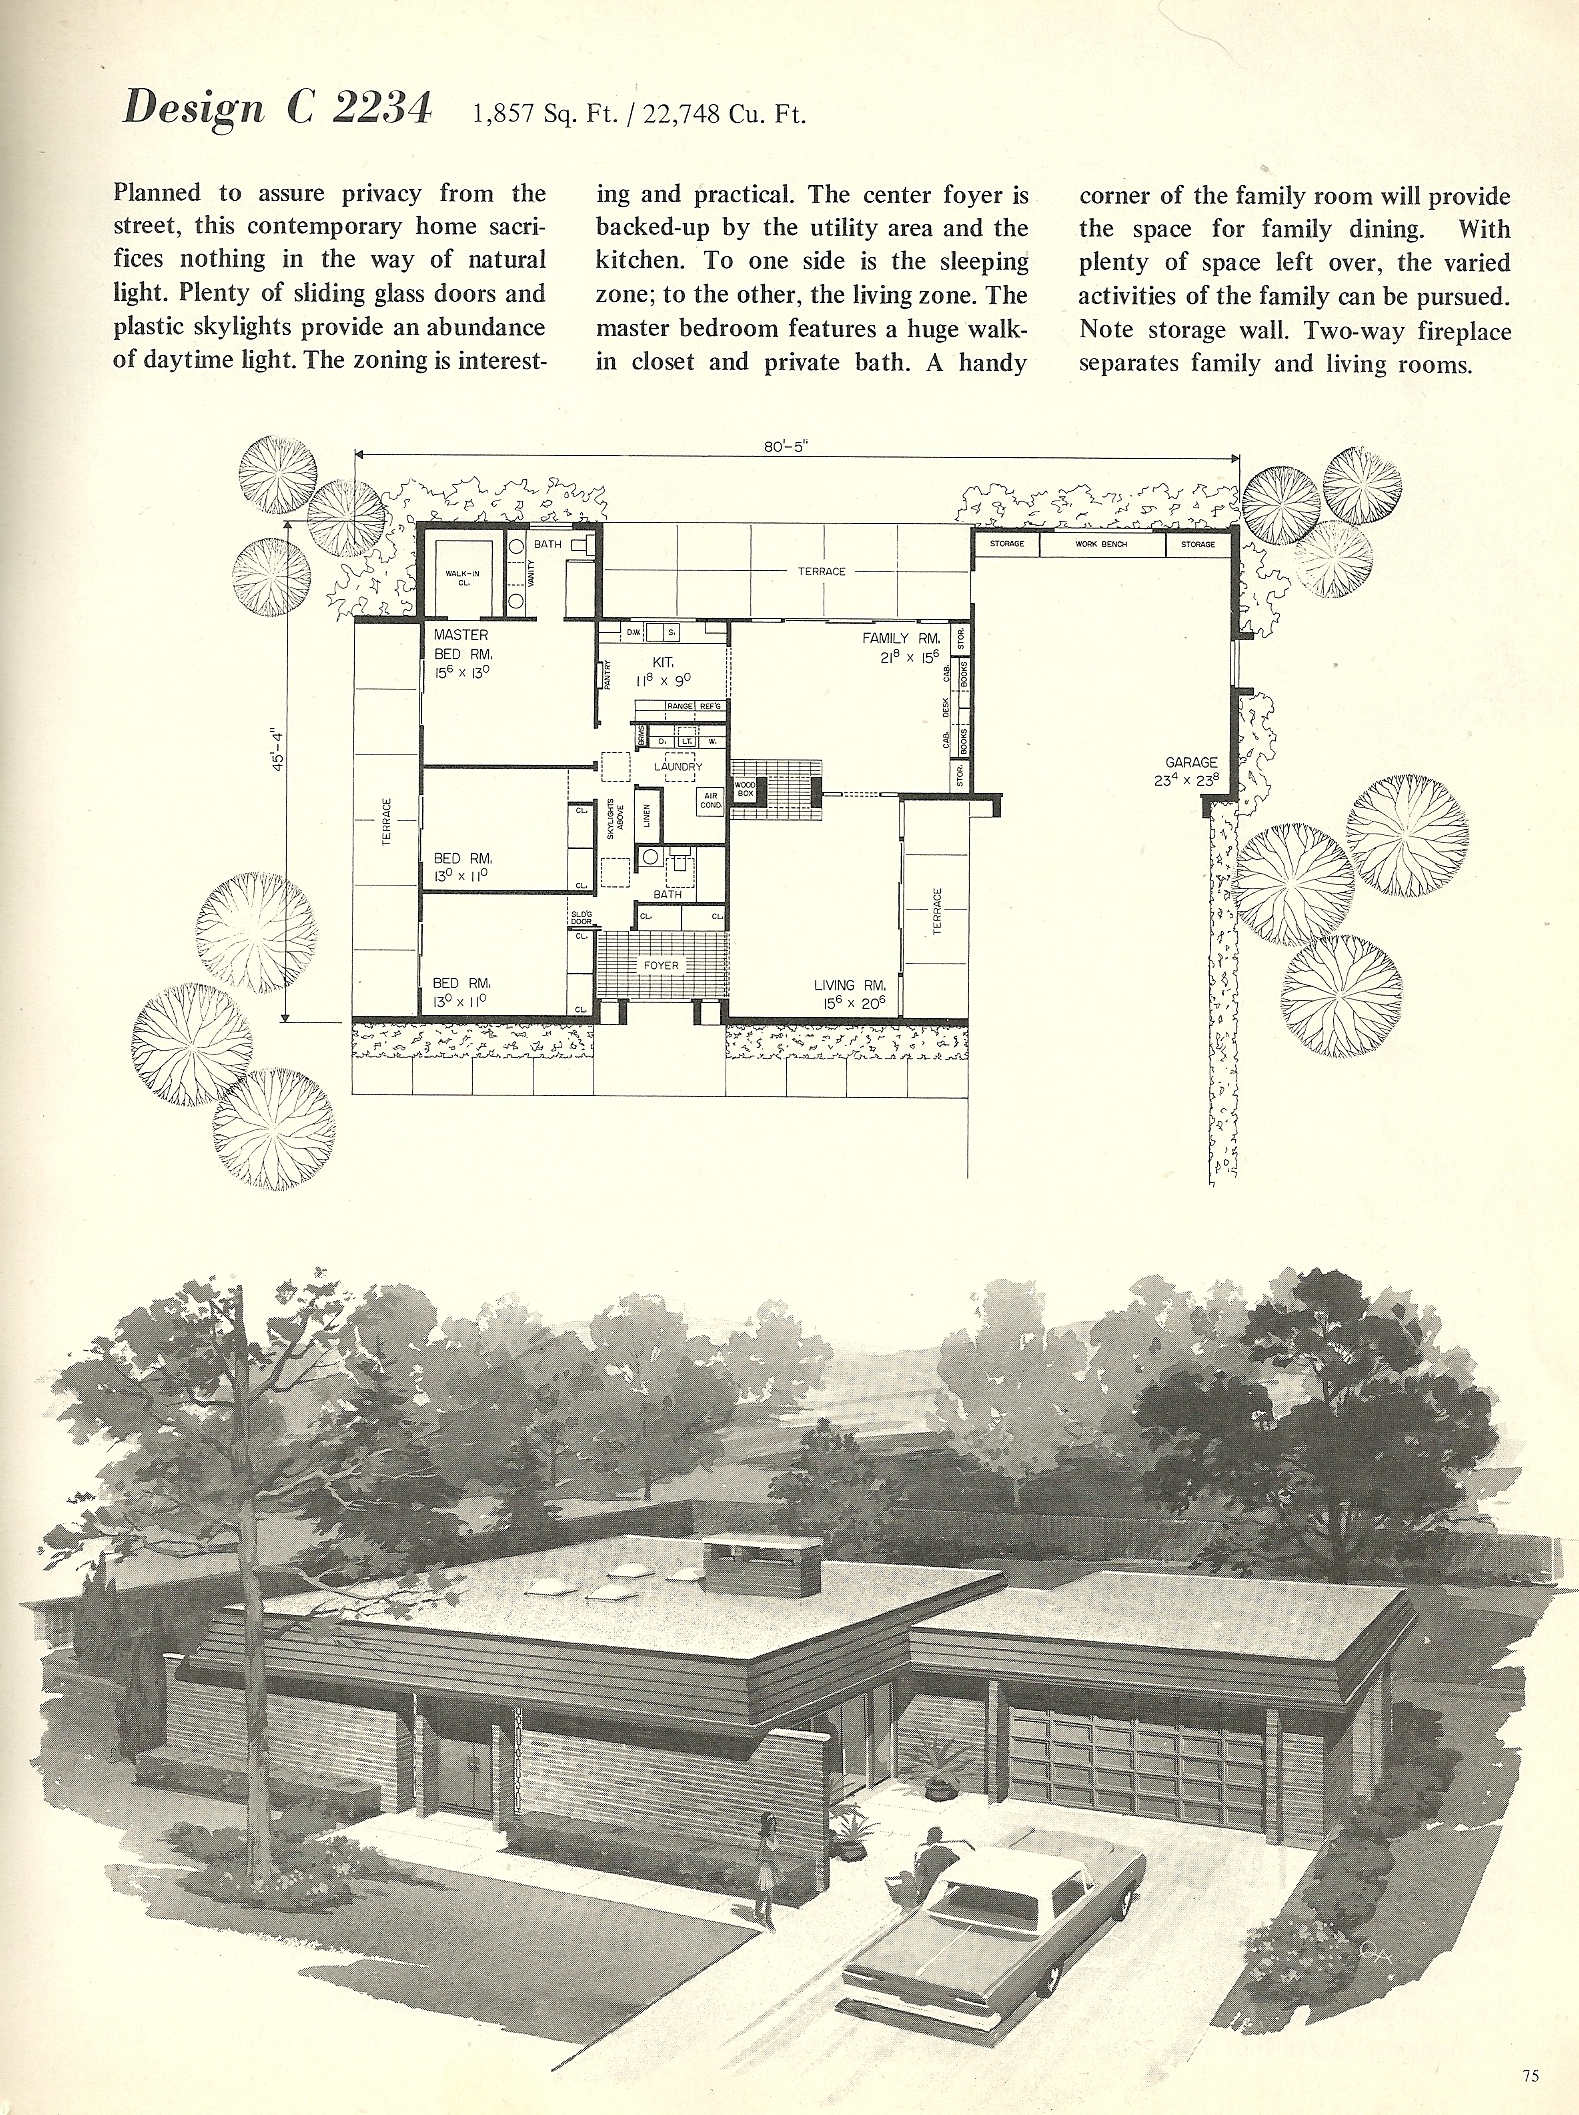 Vintage house plans 2234 antique alter ego for 1960 ranch house plans